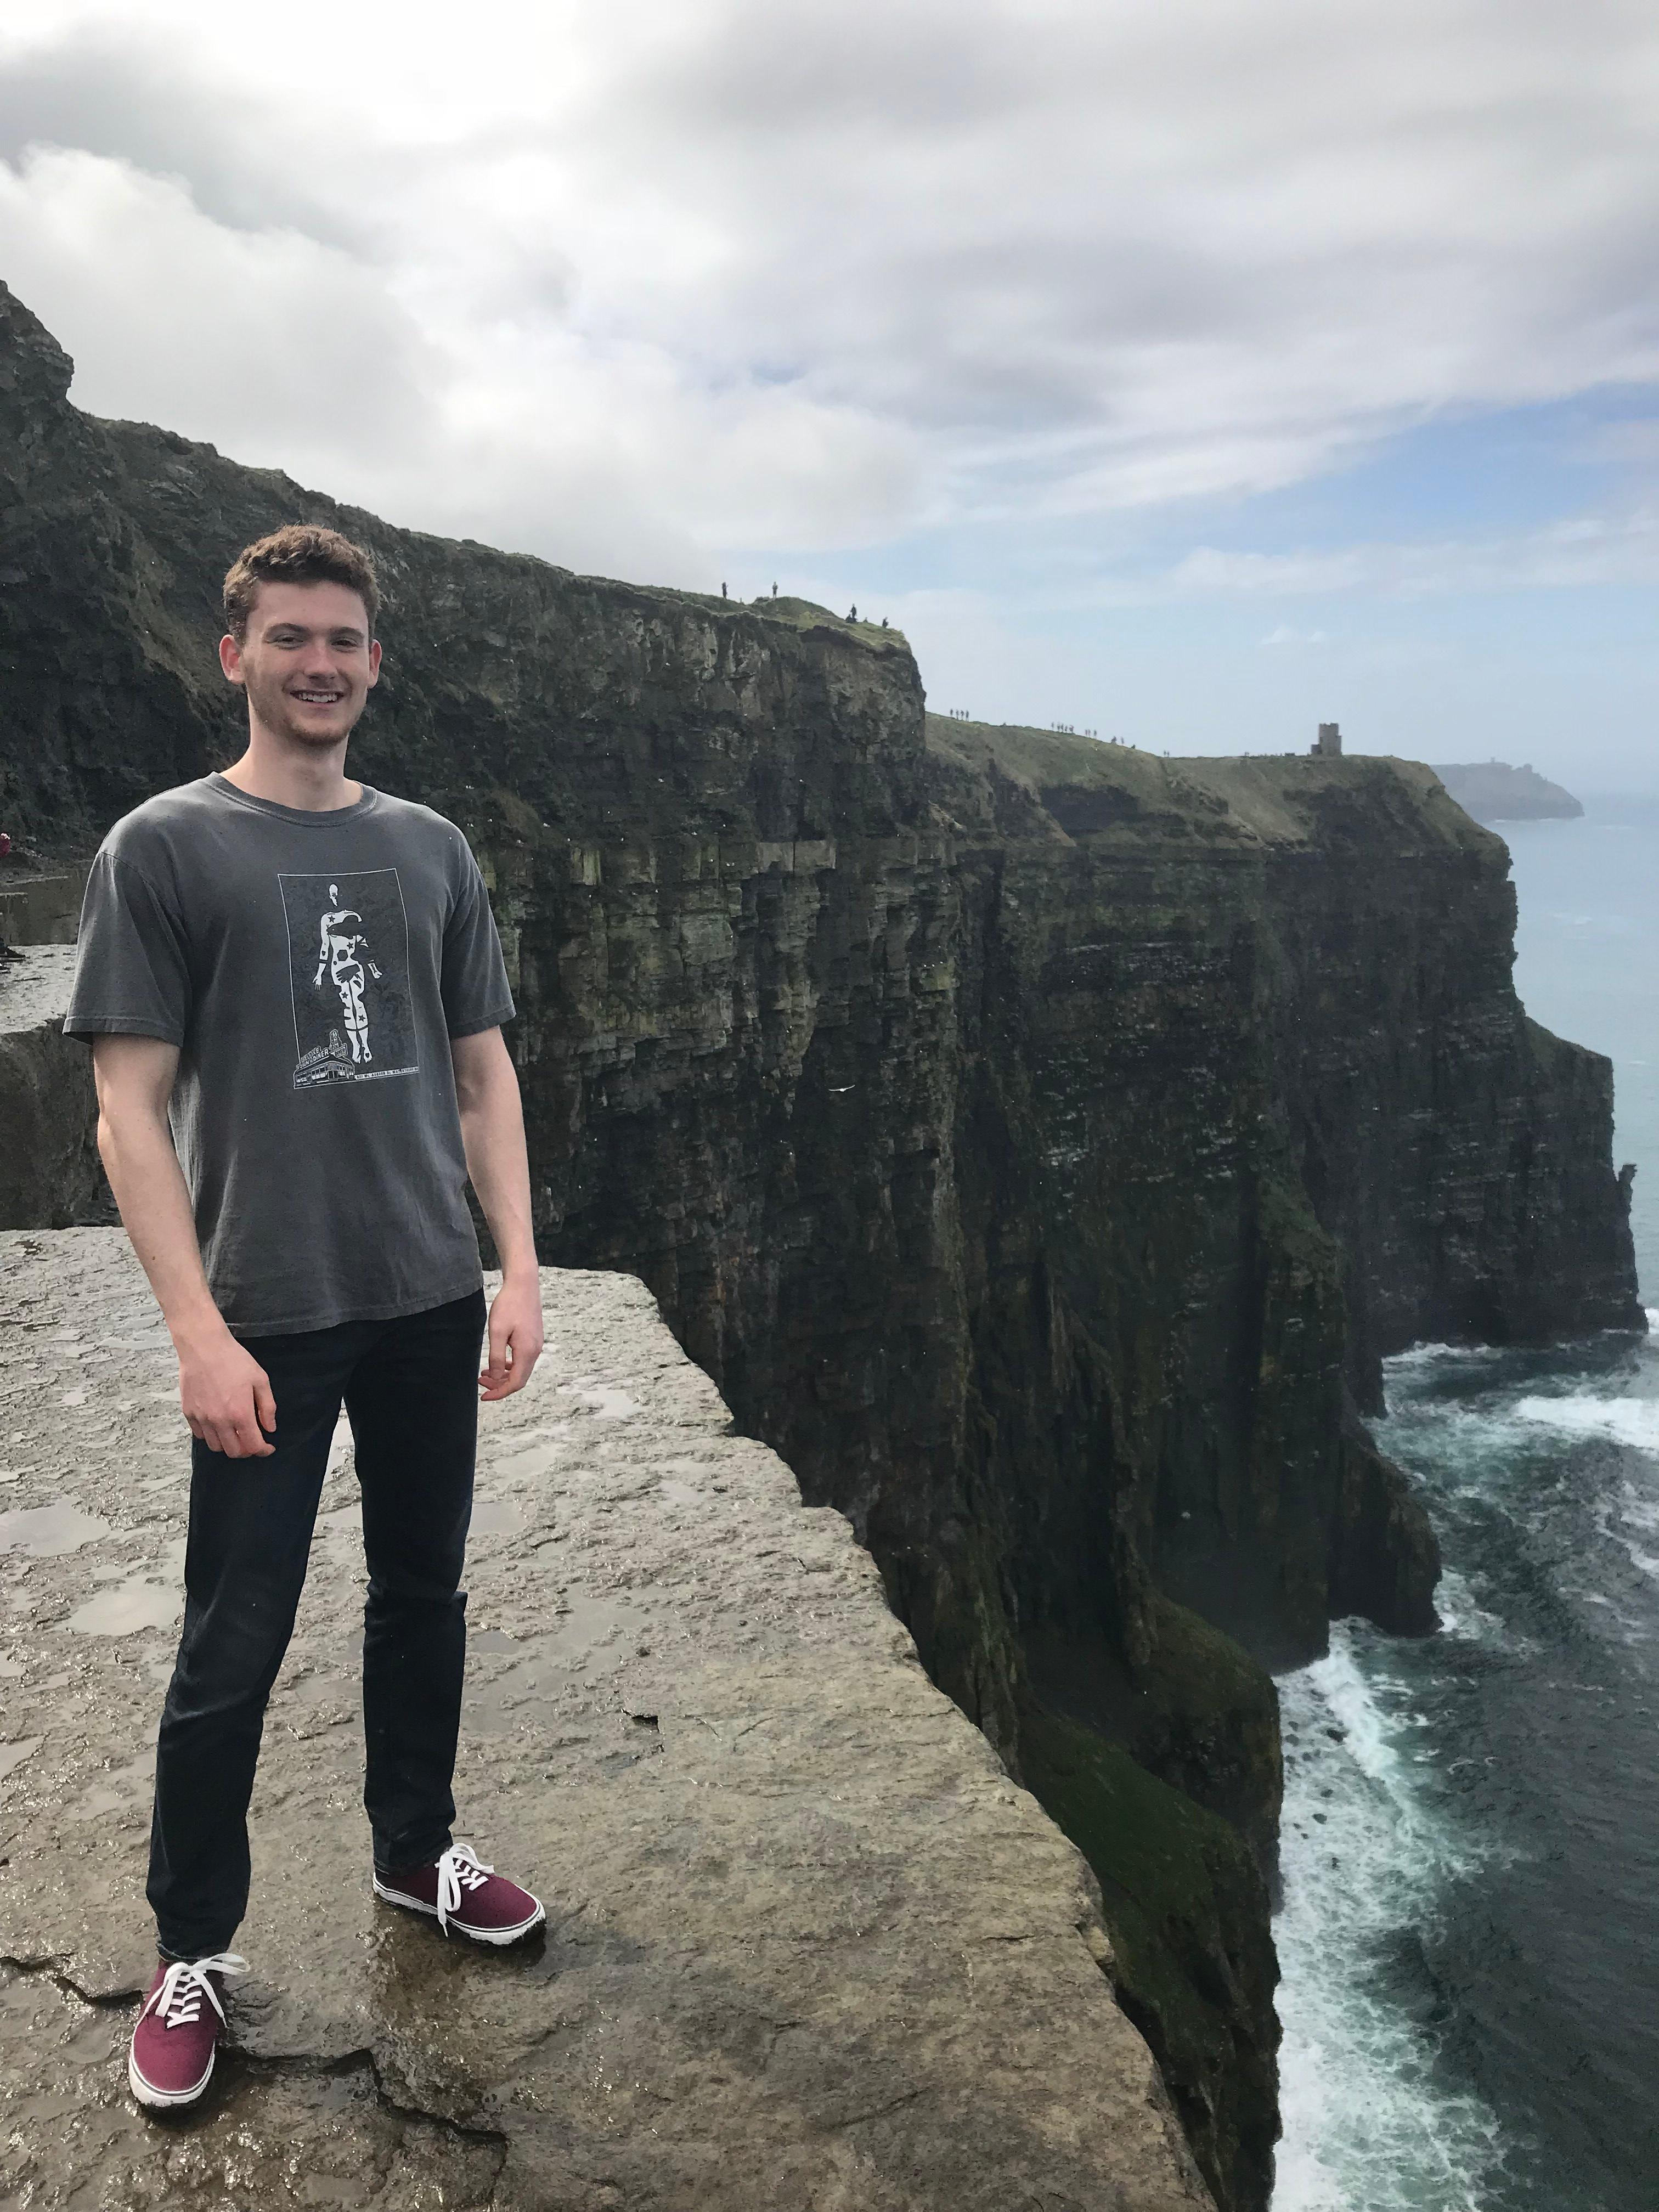 CAPAStudyAbroad_Dublin_Spring2018_From Brandon Mooney - Cliffs of Moher_1